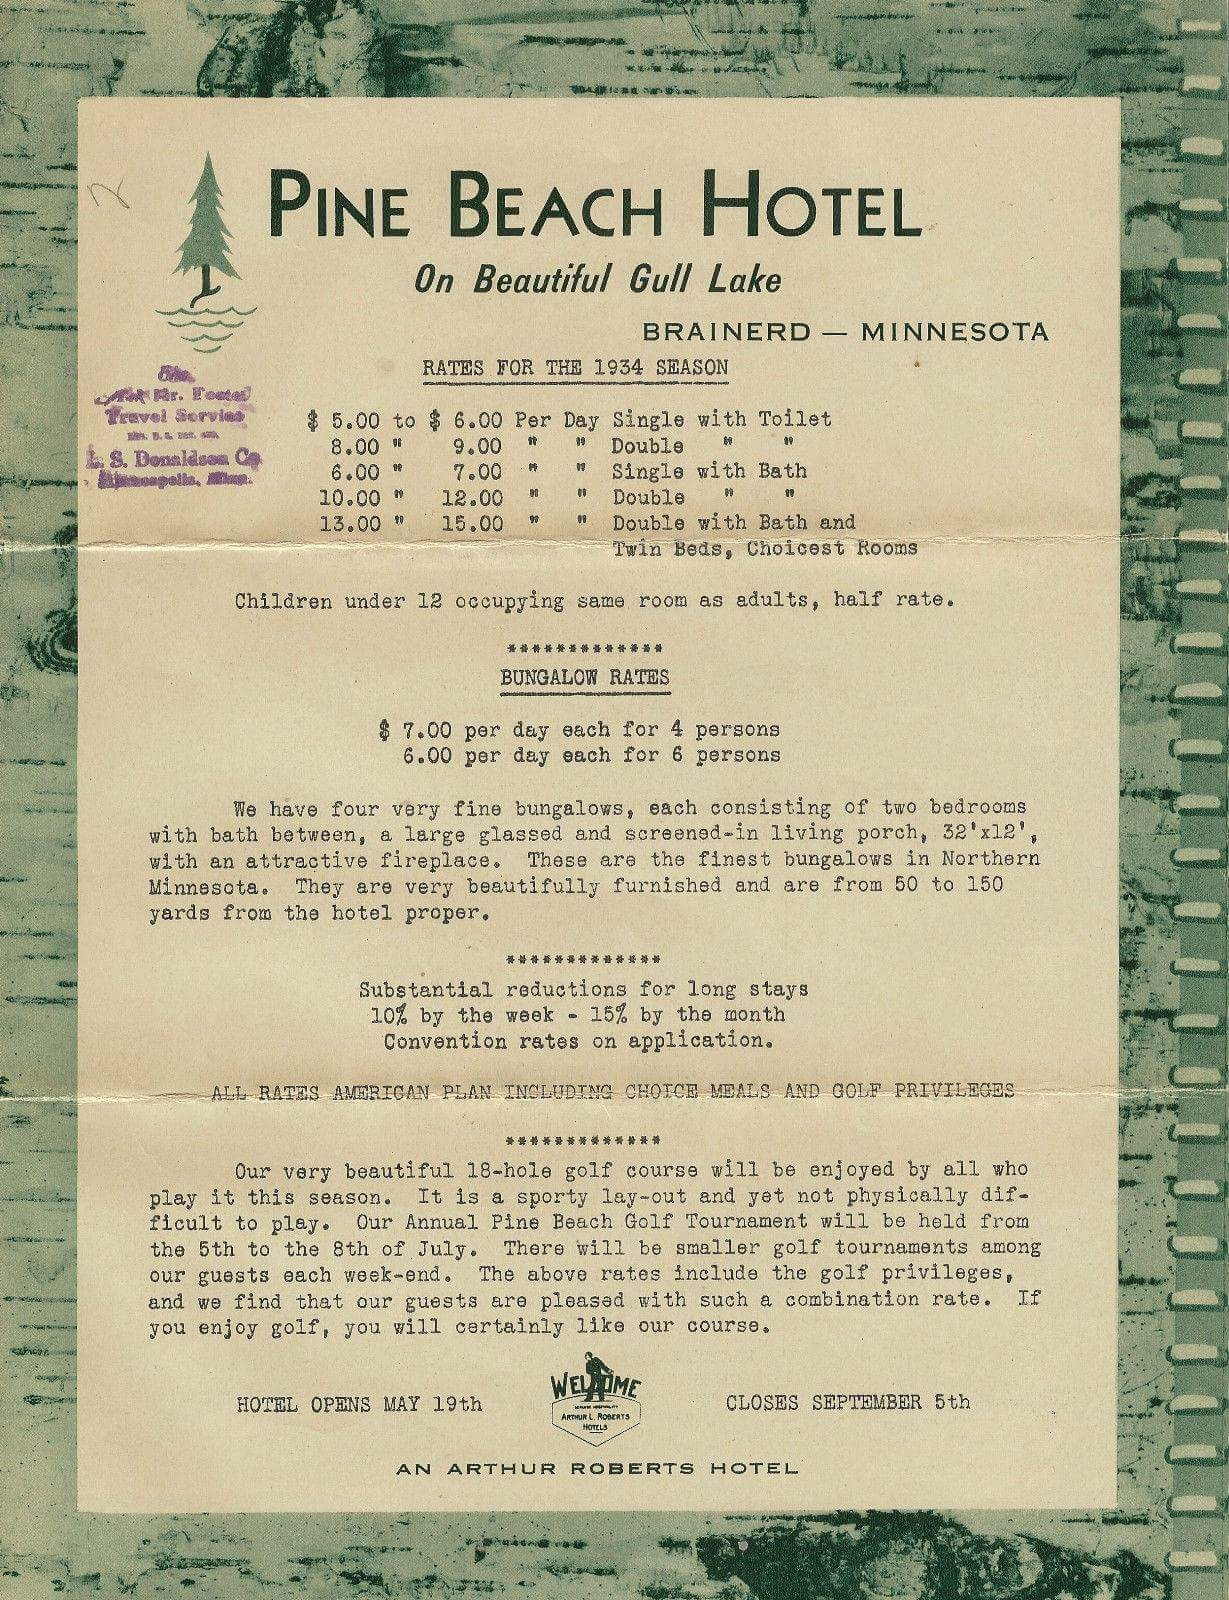 History Minnesota Golf Resort Madden 39 S On Gull Lake - Hotel Rates History